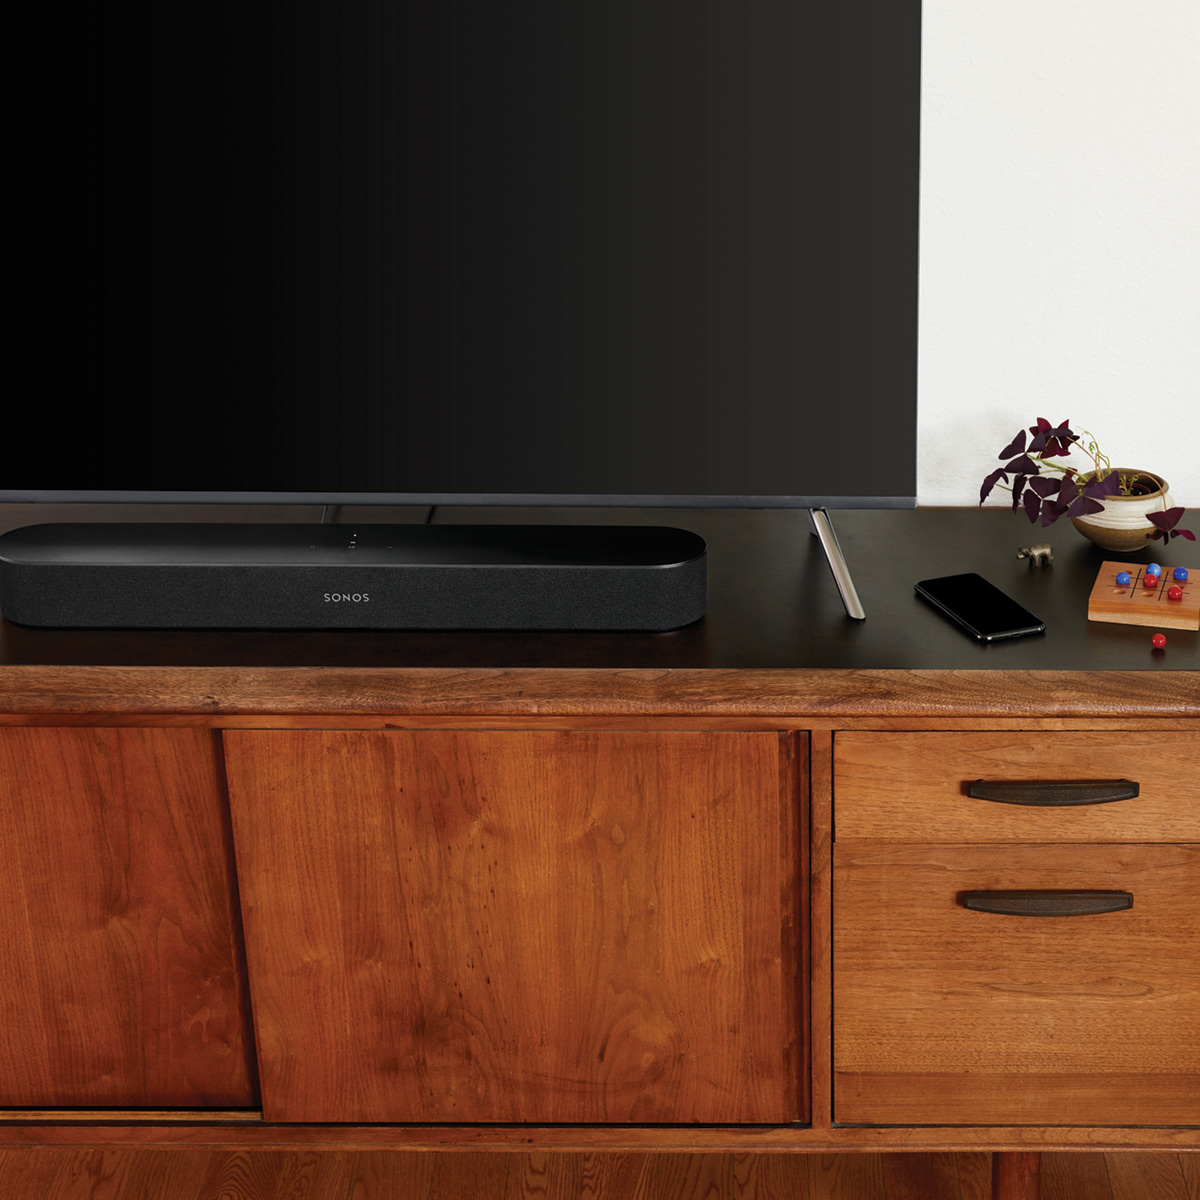 Sonos-Beam-Compact-Smart-Sound-Bar-with-Voice-Control thumbnail 22